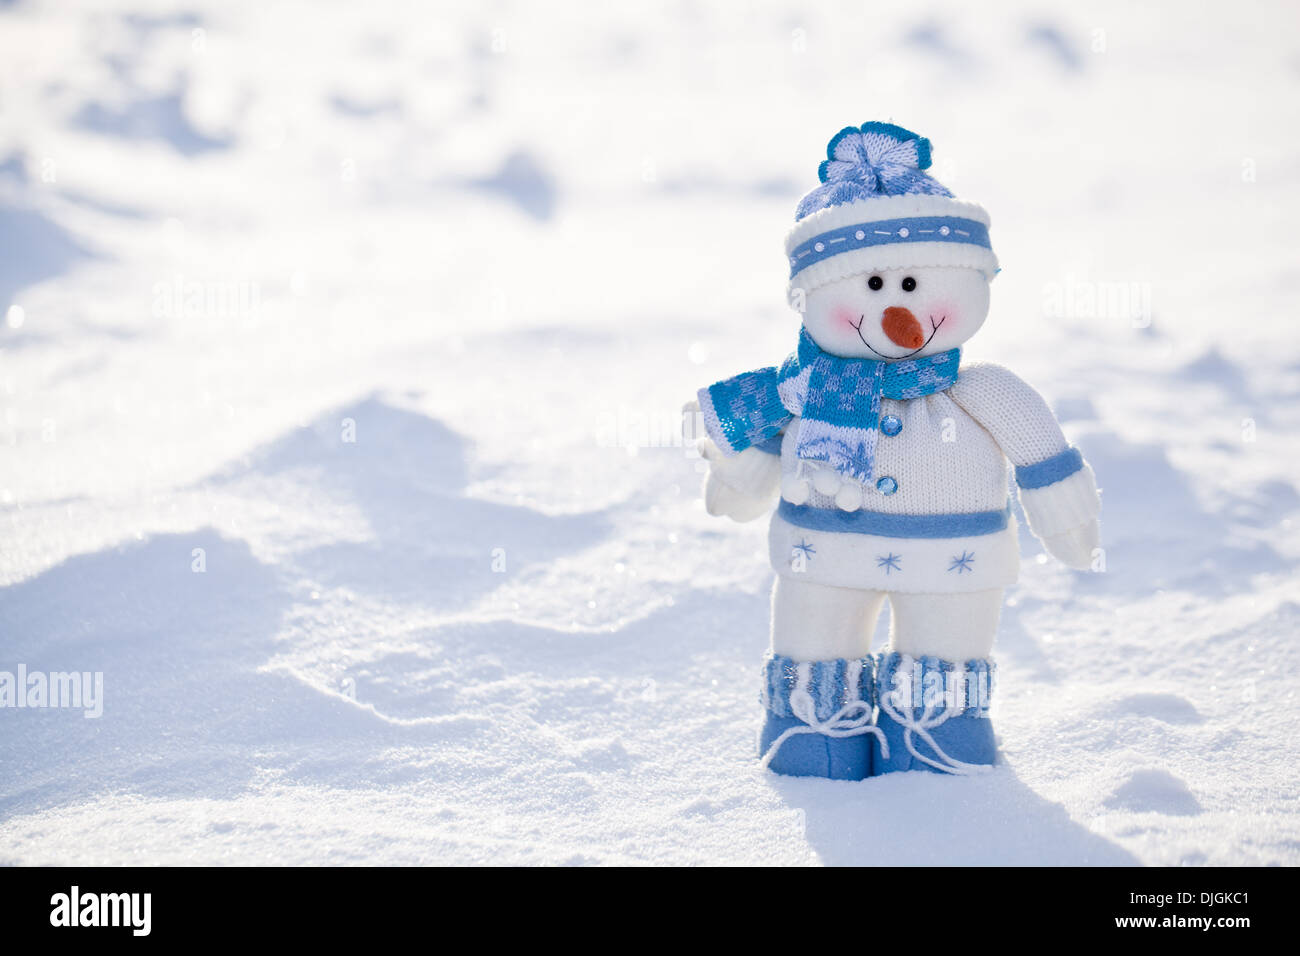 Little snowman with carrot nose in the snow. - Stock Image